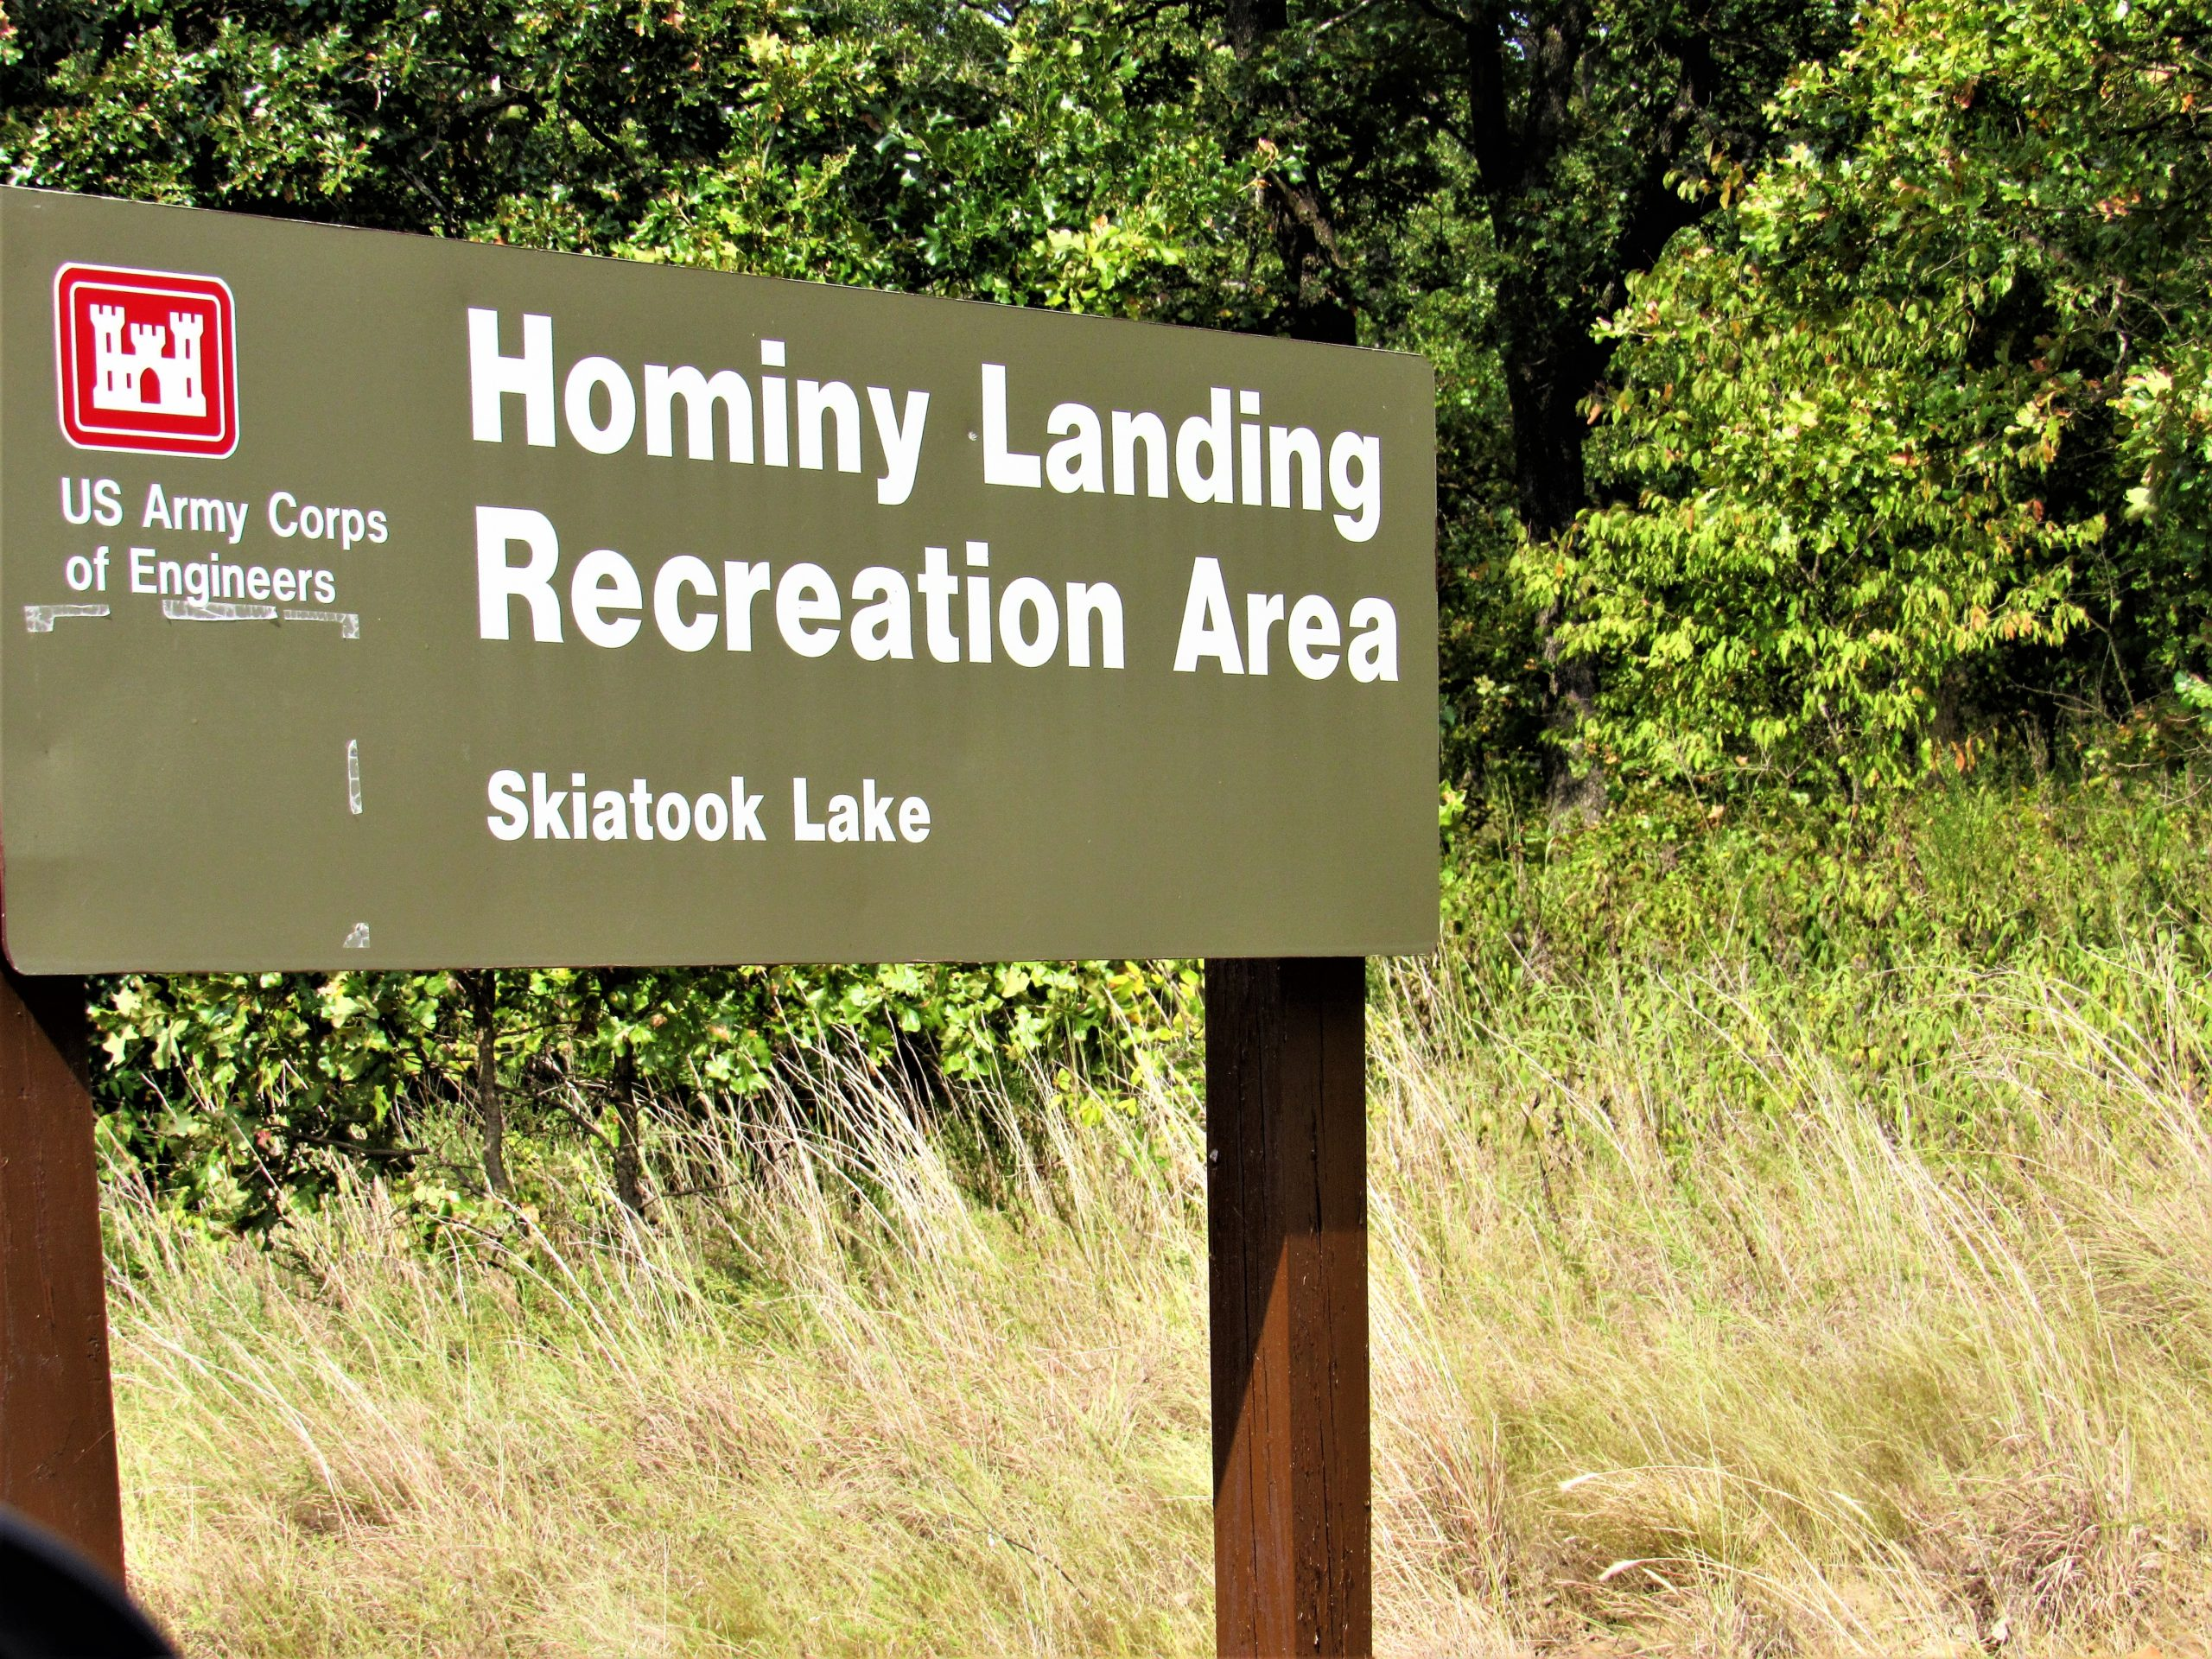 Sign at the entrance to Hominy Landing on Lake Skiatook in Osage County, Oklahoma